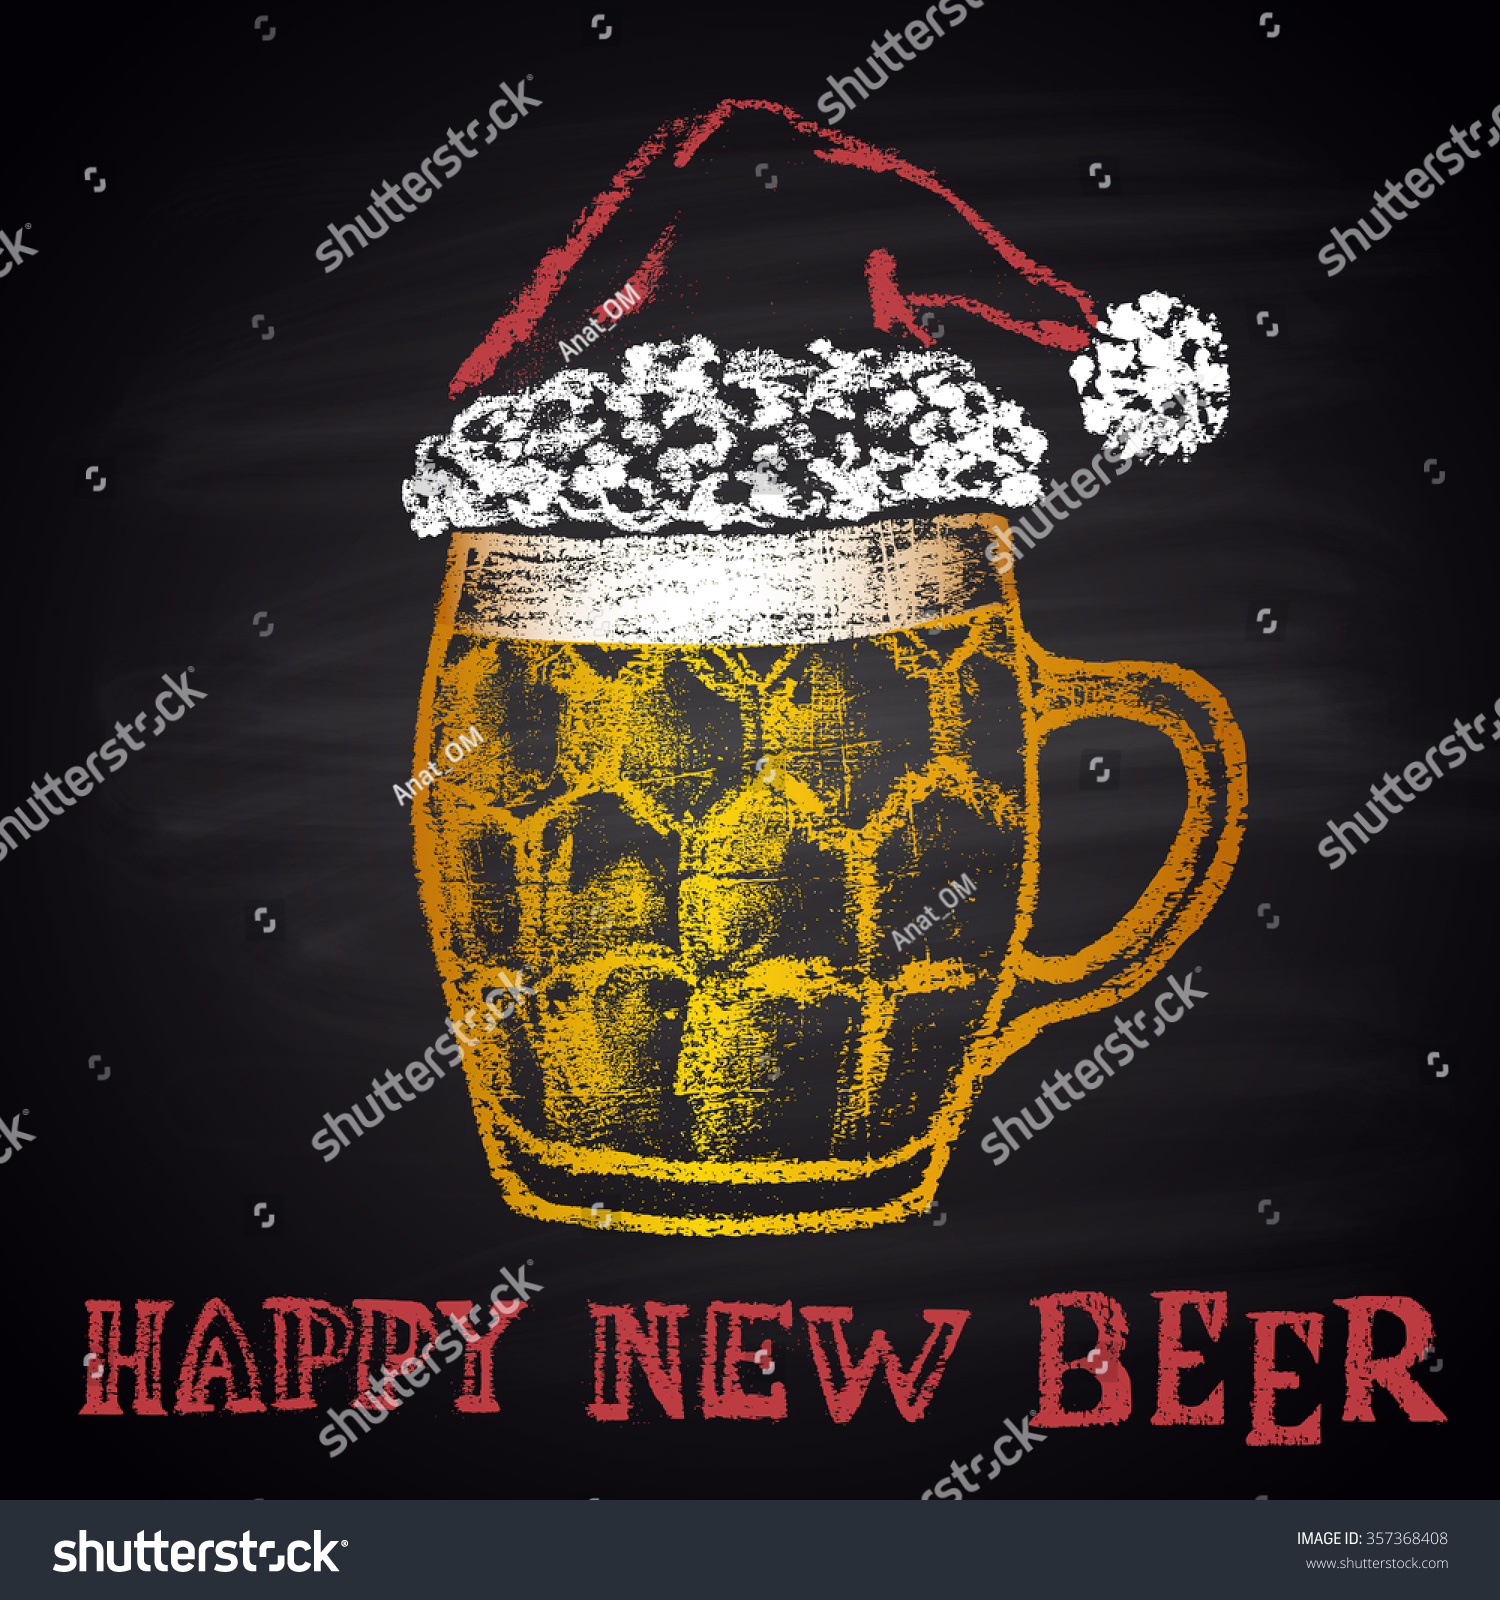 colored chalk drawn original illustration for merry christmas and happy new year with beer mug